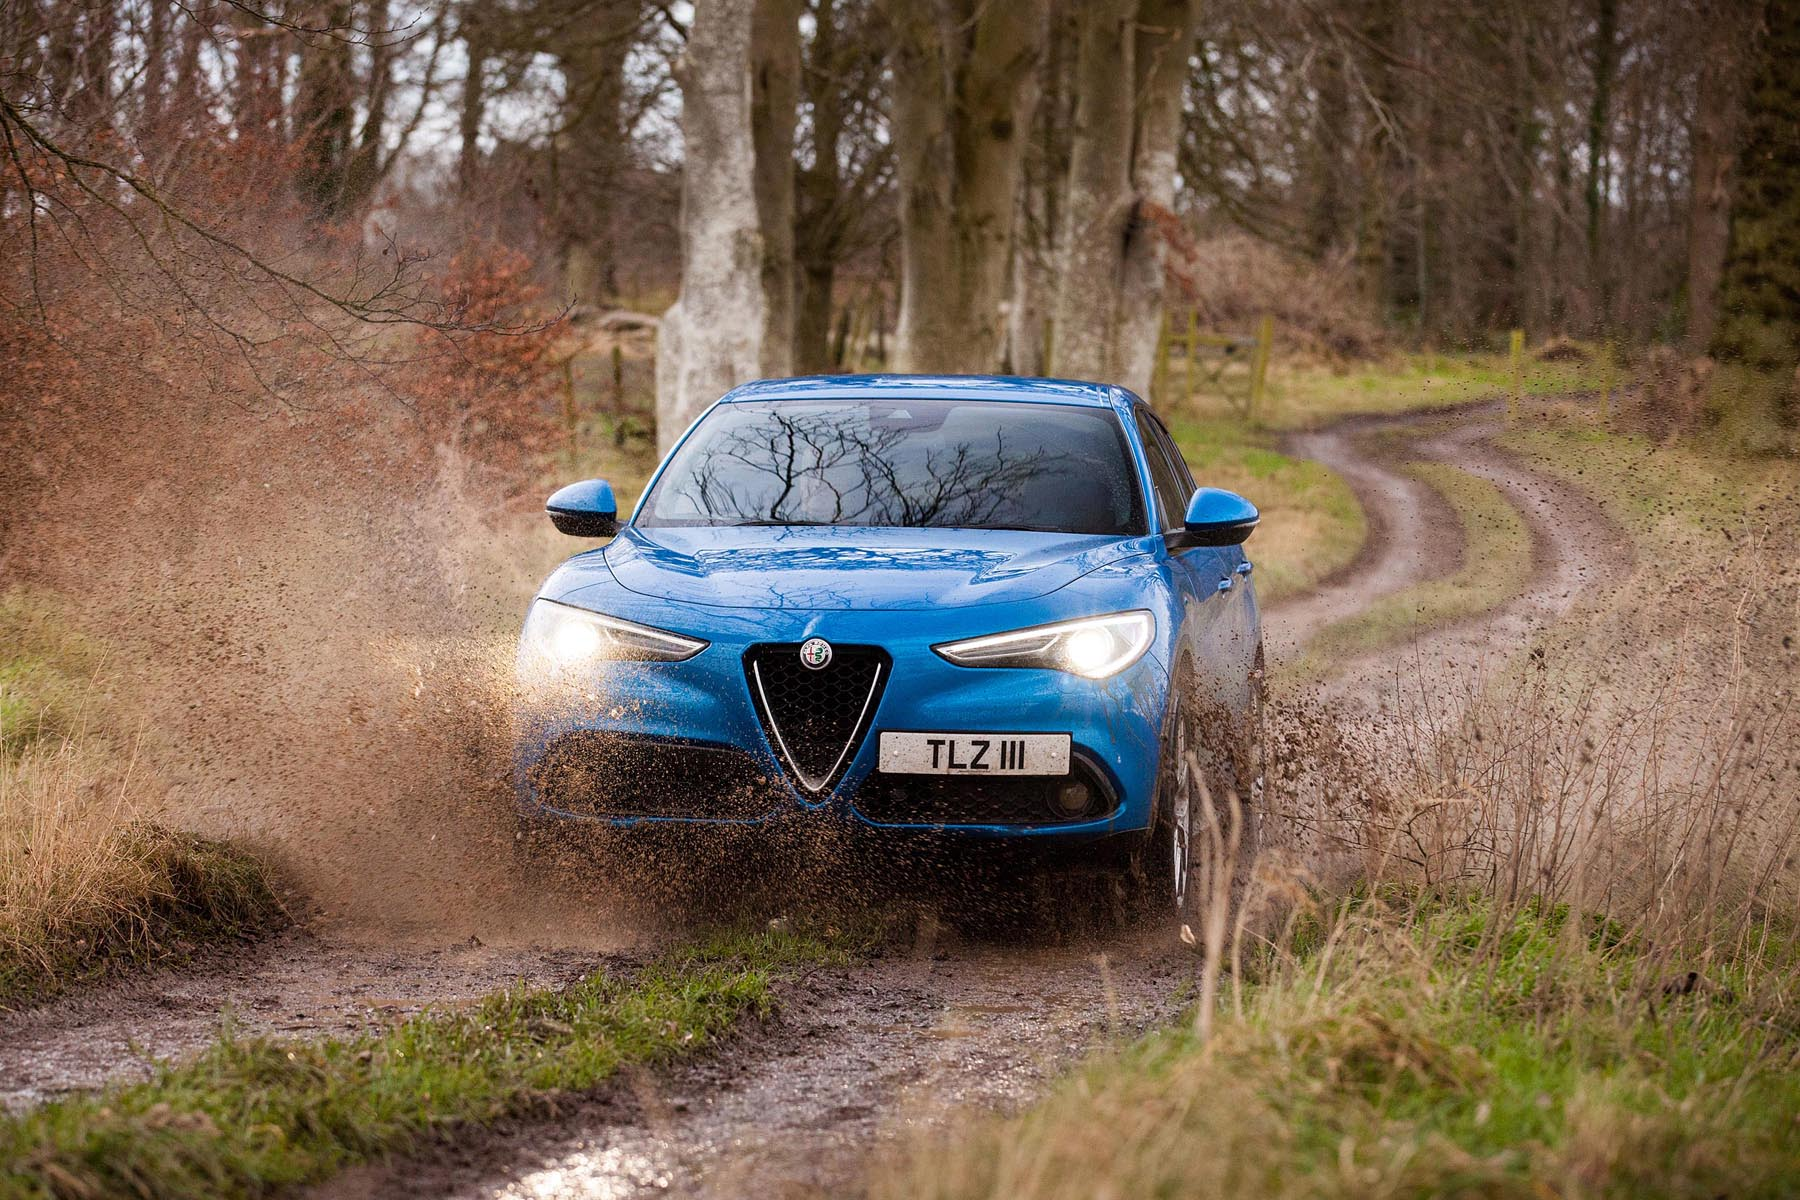 AN EXCITING FIRST FOR ALFA WITH THEIR NEW SUV Used Cars NI Blog - Sports cars ni